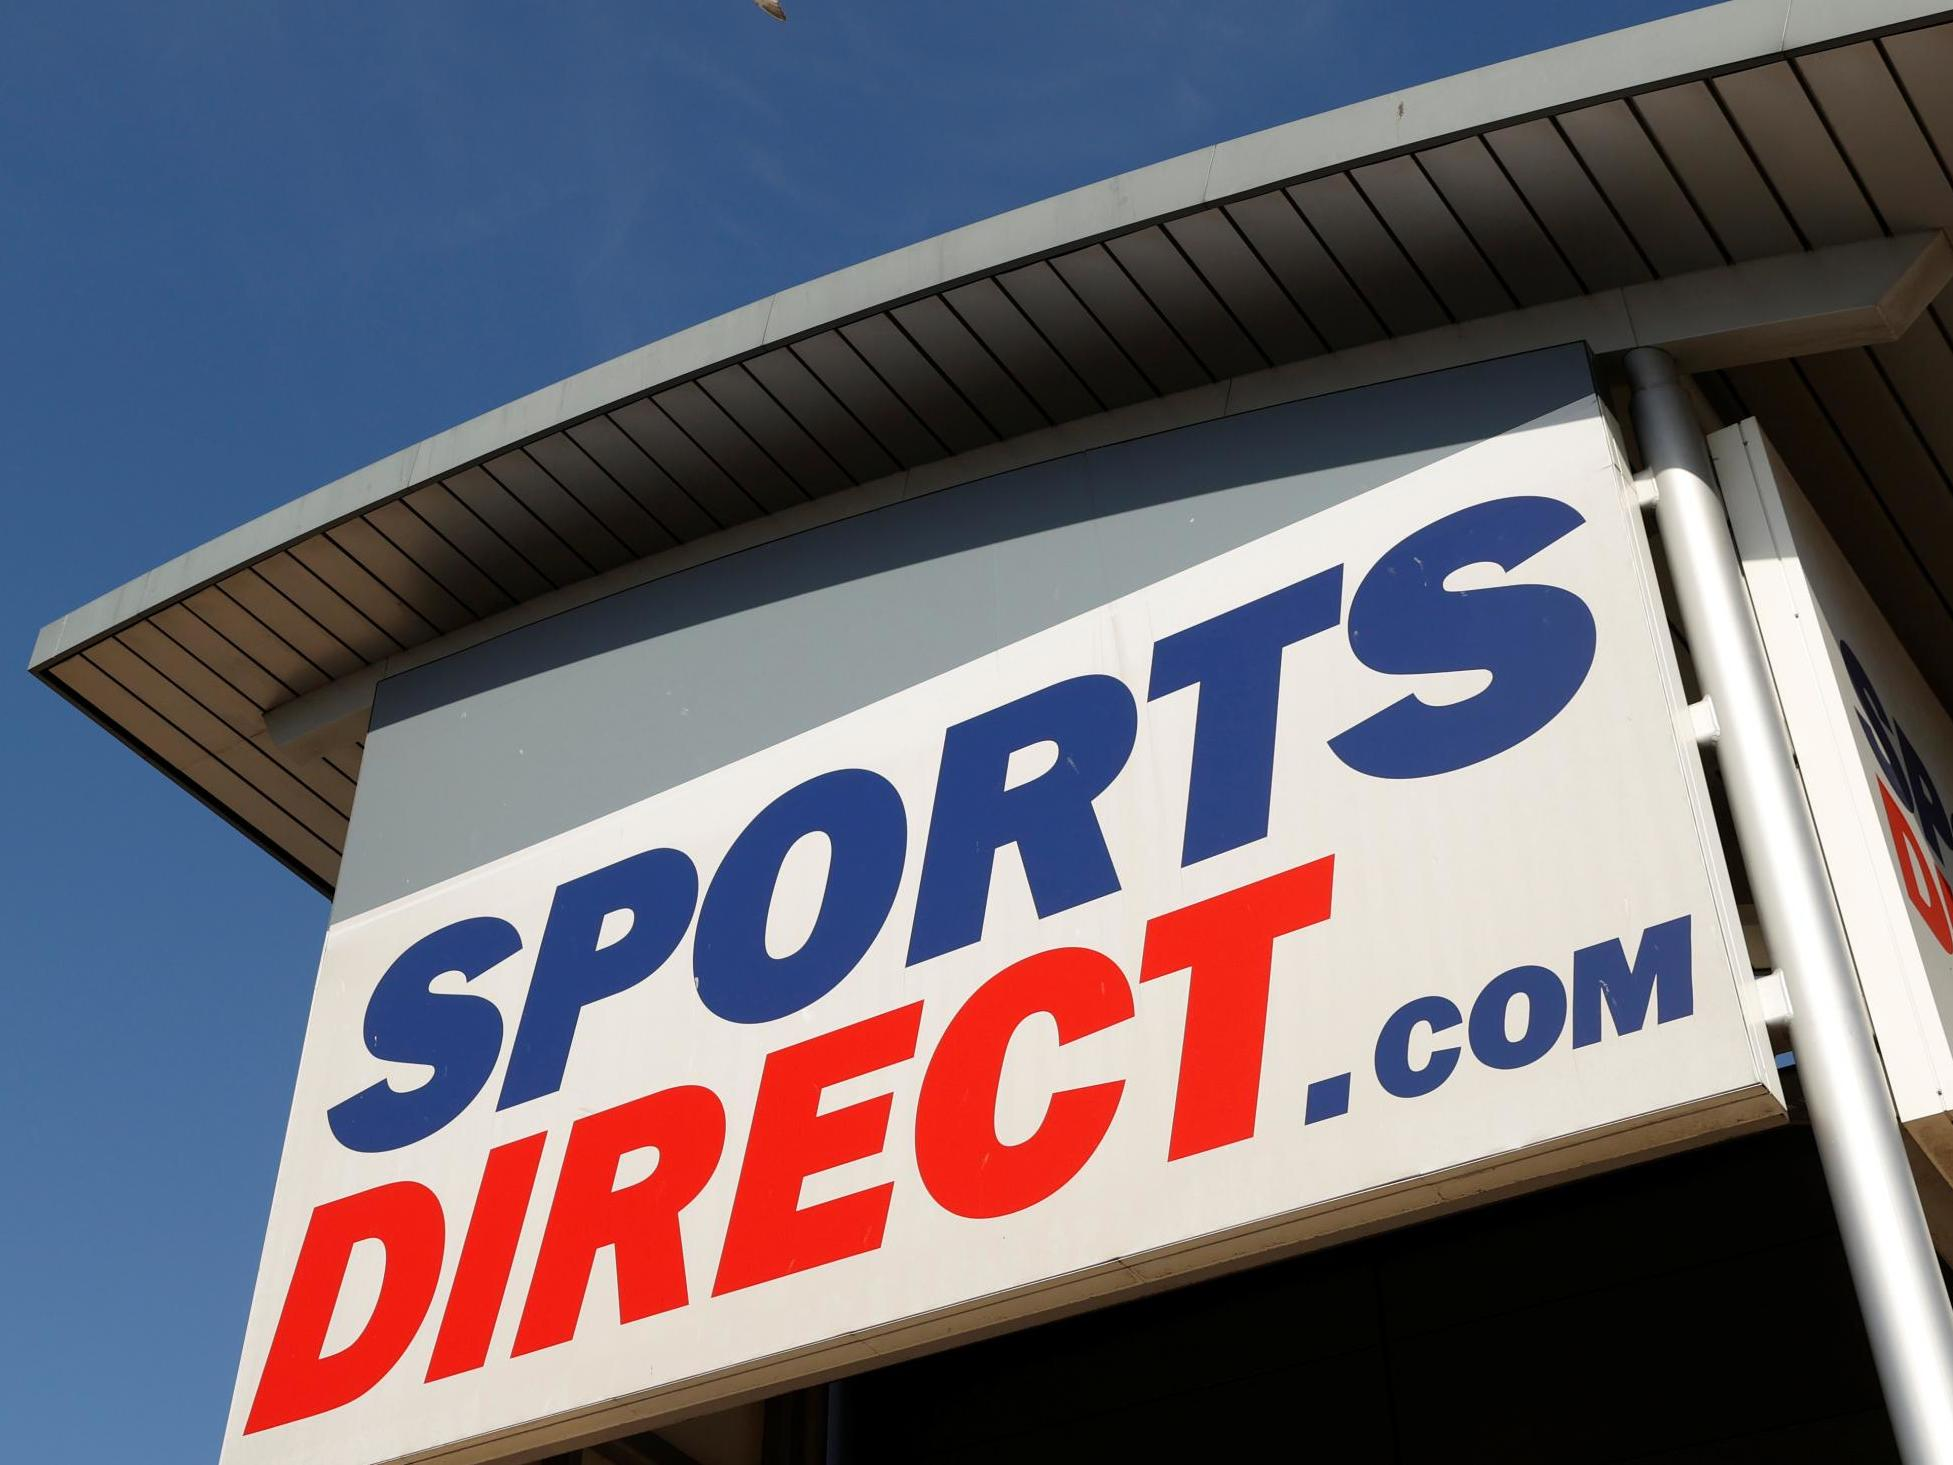 Coronavirus Sports Direct Employees Outraged After Being Told To Work Despite Stores Being Closed The Independent The Independent Sports direct international plc is one the largest retailer of sport's good in the united kingdom which has a large array of sporting brands like adidas. coronavirus sports direct employees